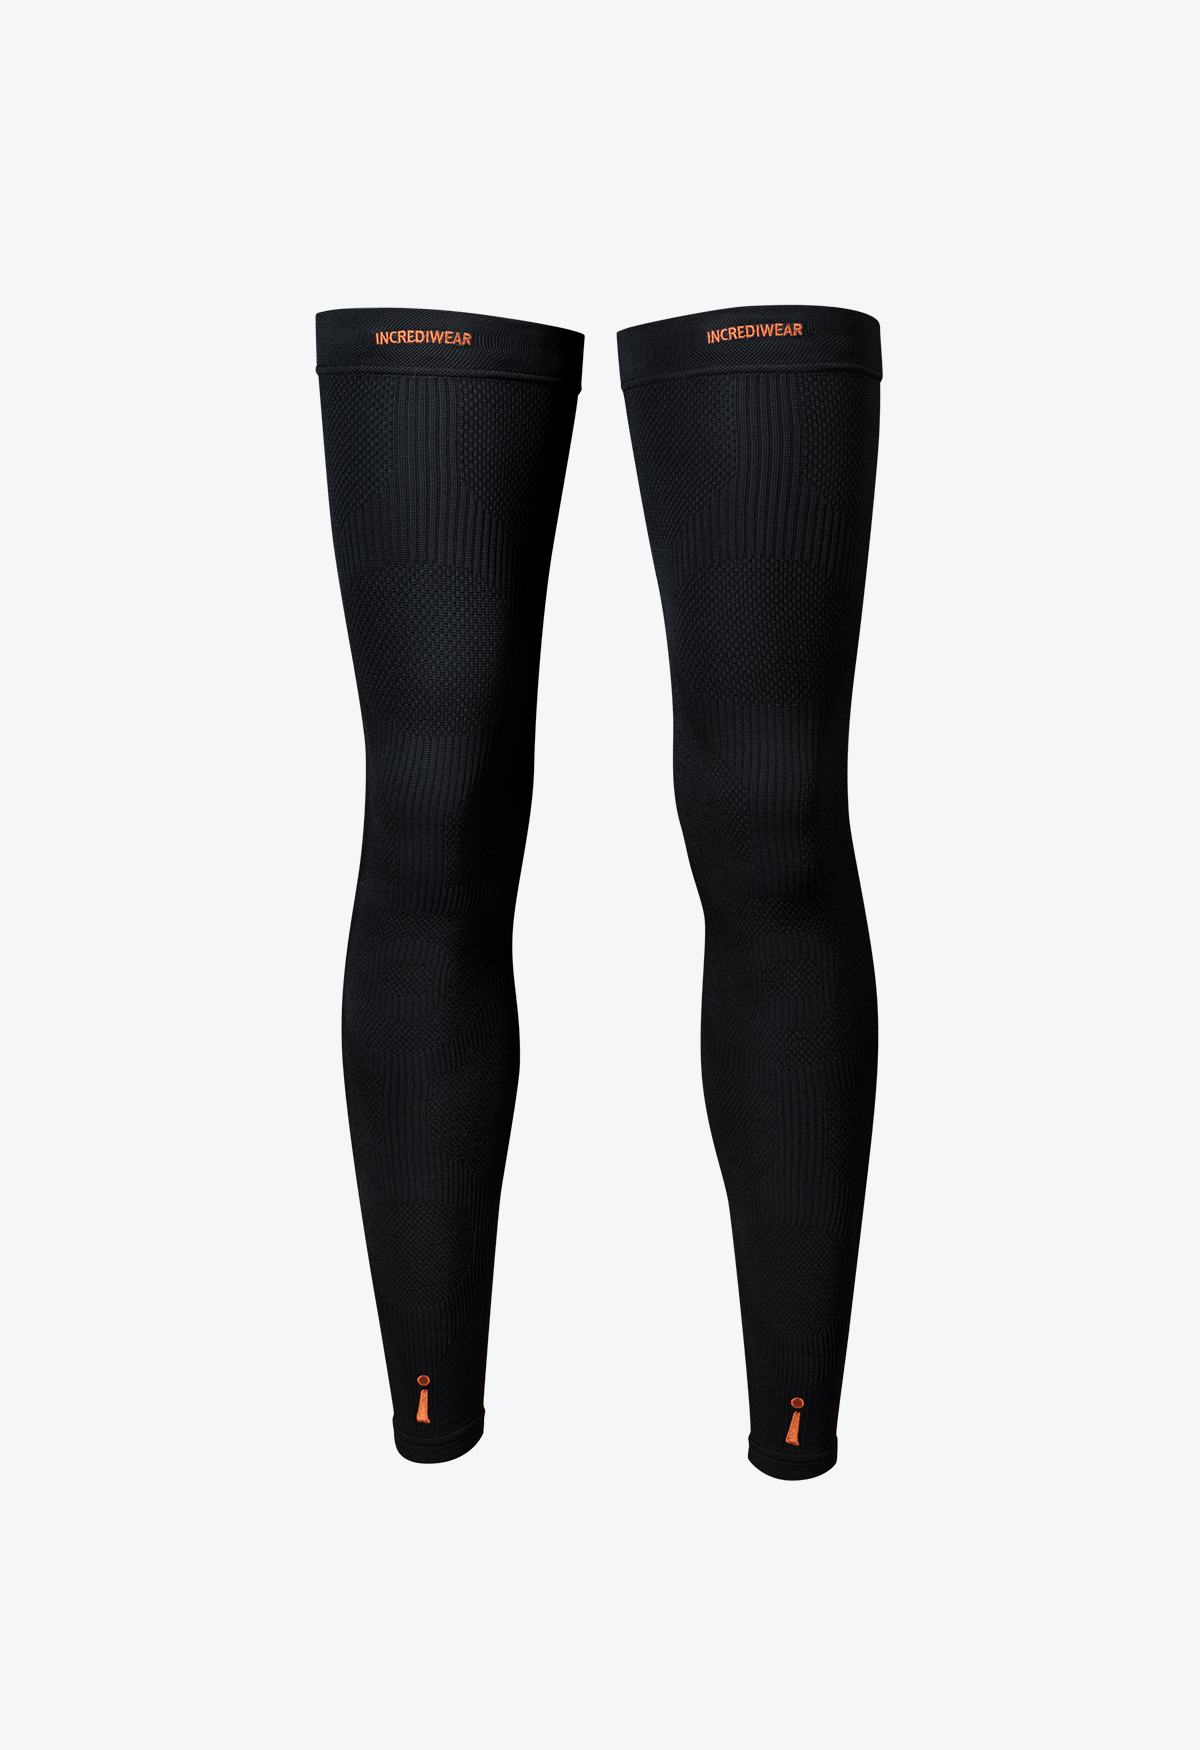 Incrediwear Leg Sleeves